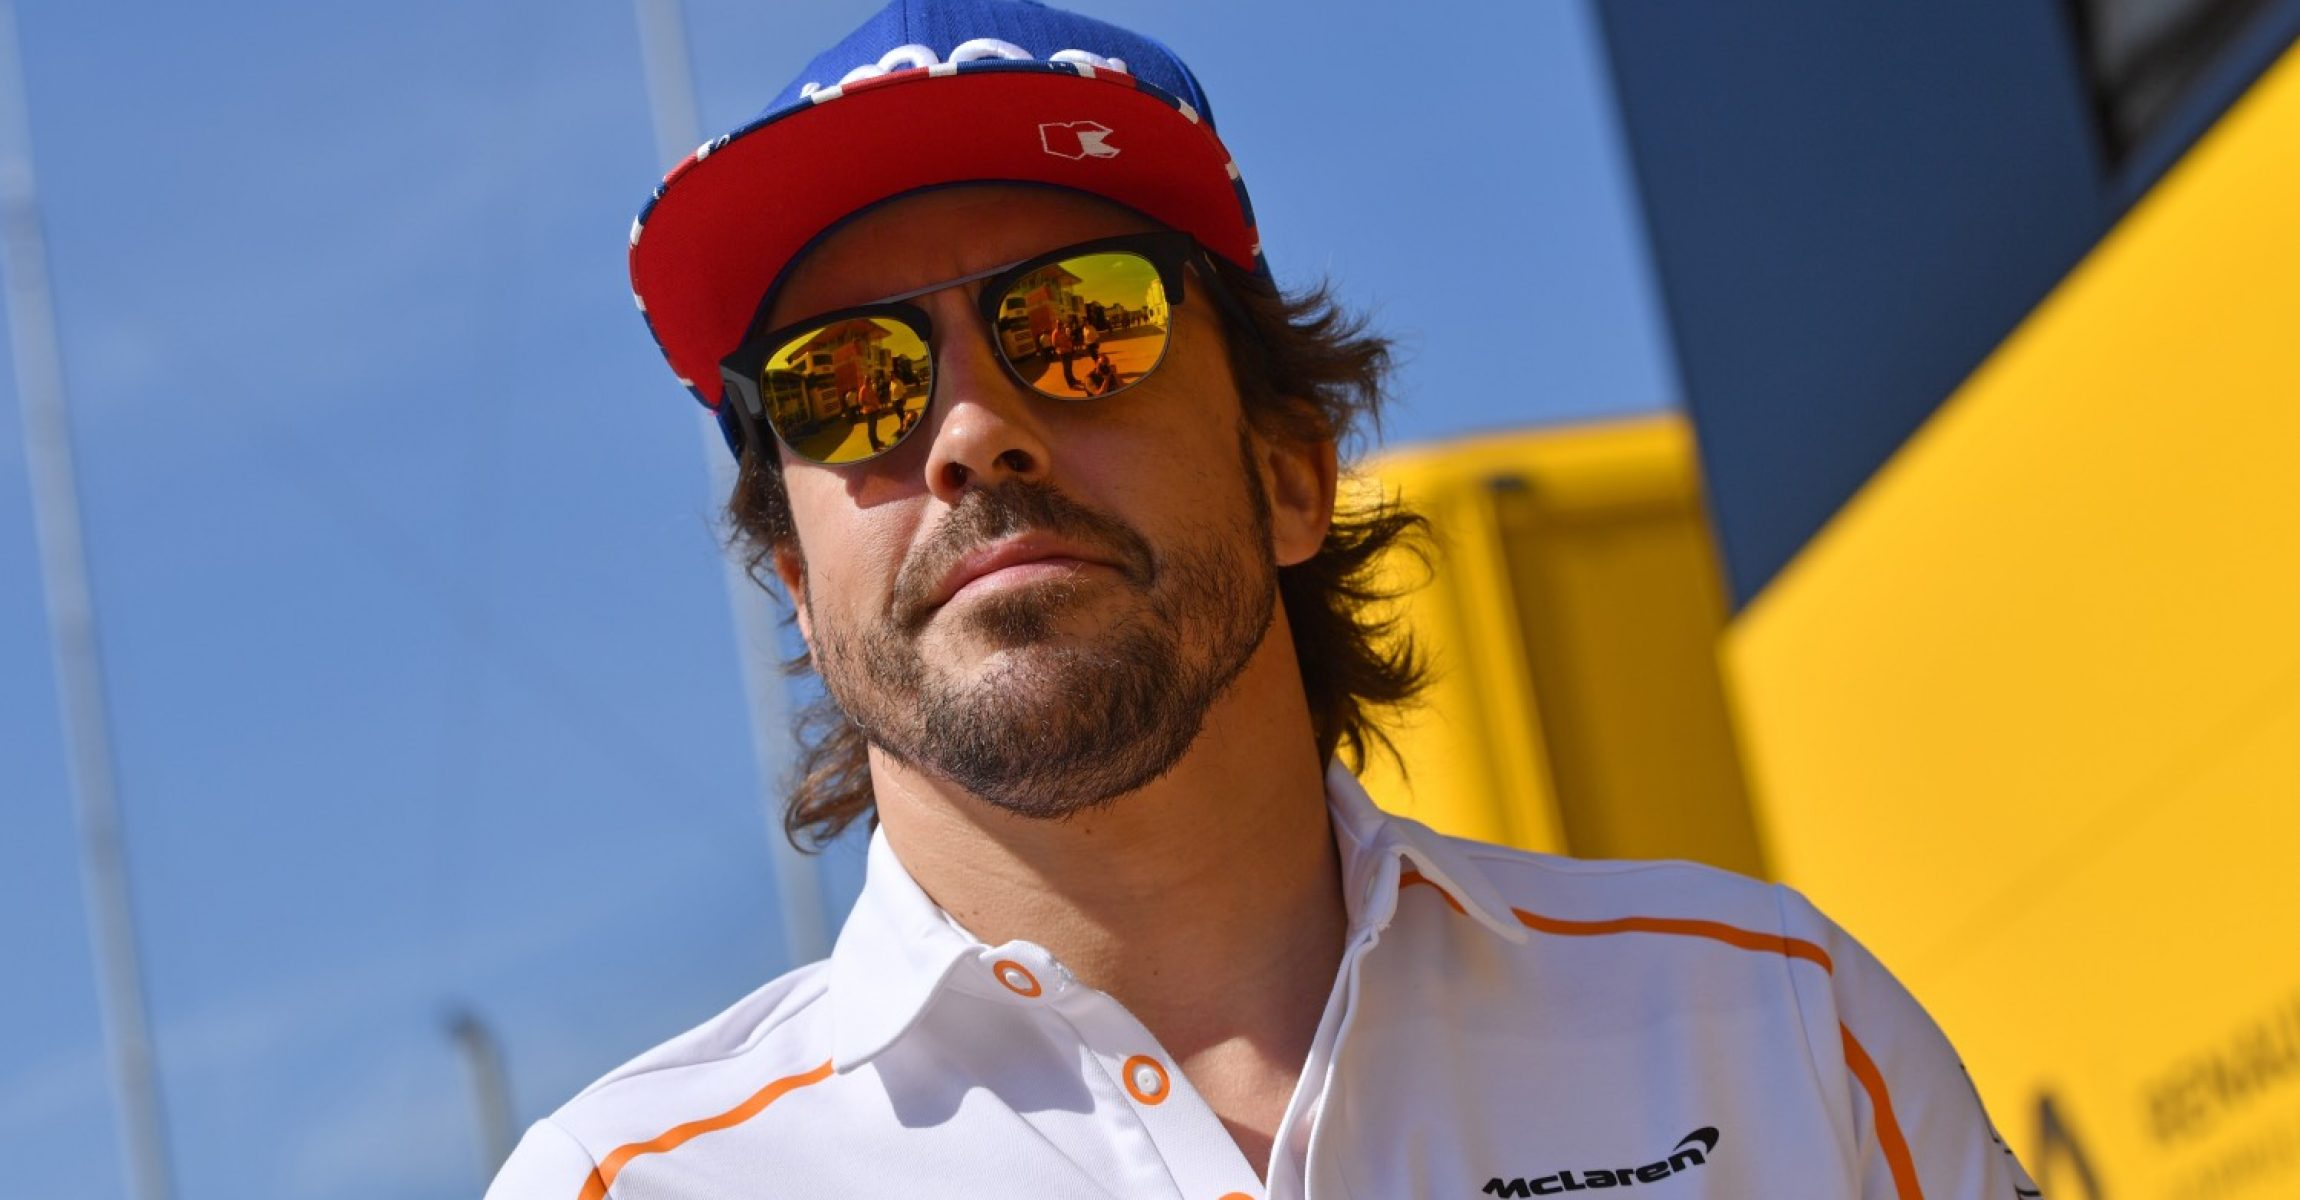 Silverstone Circuit, Northamptonshire, UK Saturday 7 July 2018. Fernando Alonso, McLaren. Photo: Jerry Andre/McLaren ref: Digital Image dcb1807jy05